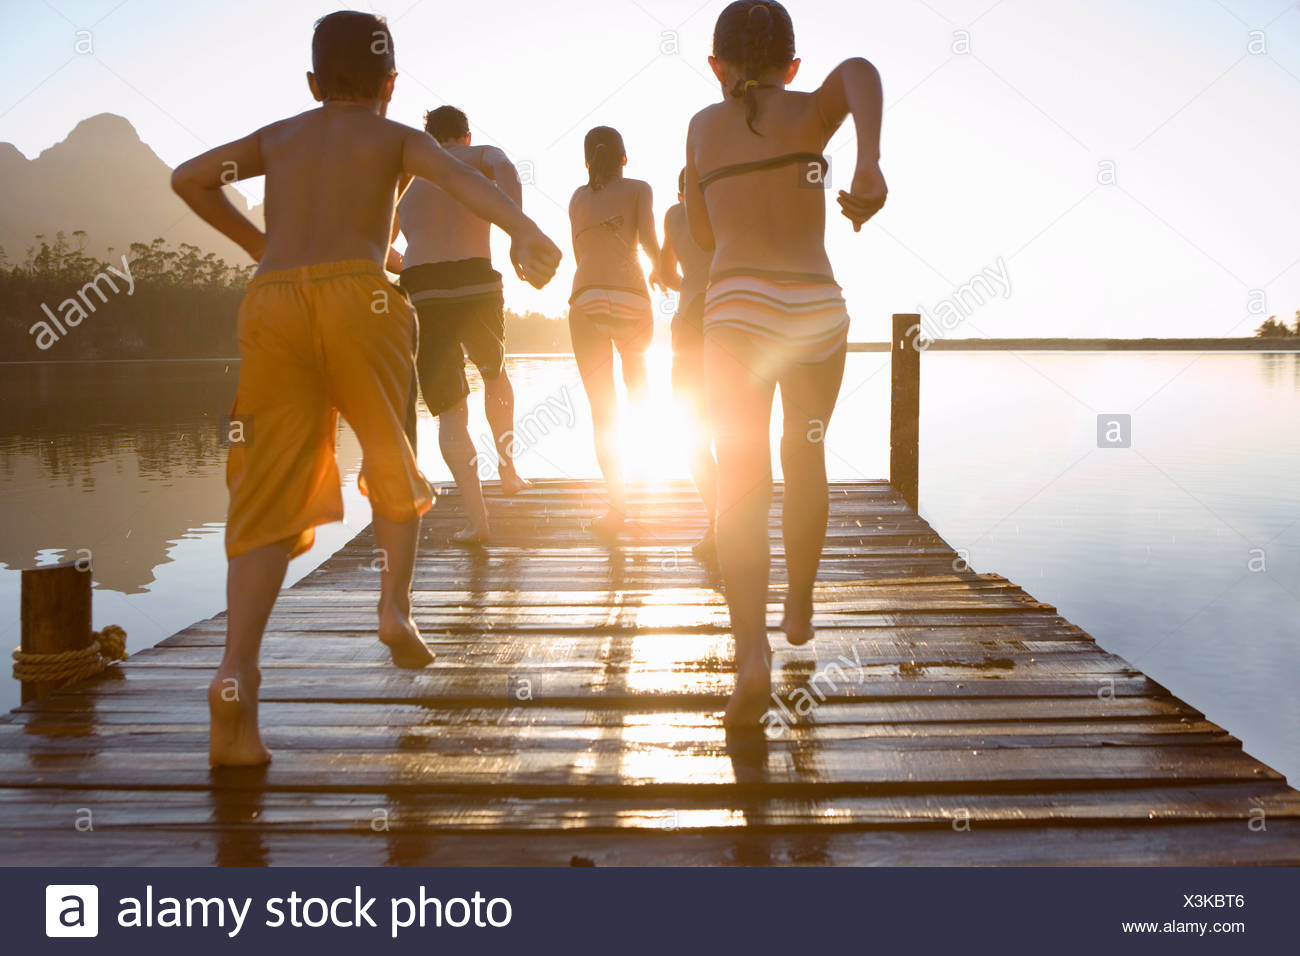 Family in swimwear running along jetty jumping into lake at sunset rear view lens flare - Stock Image